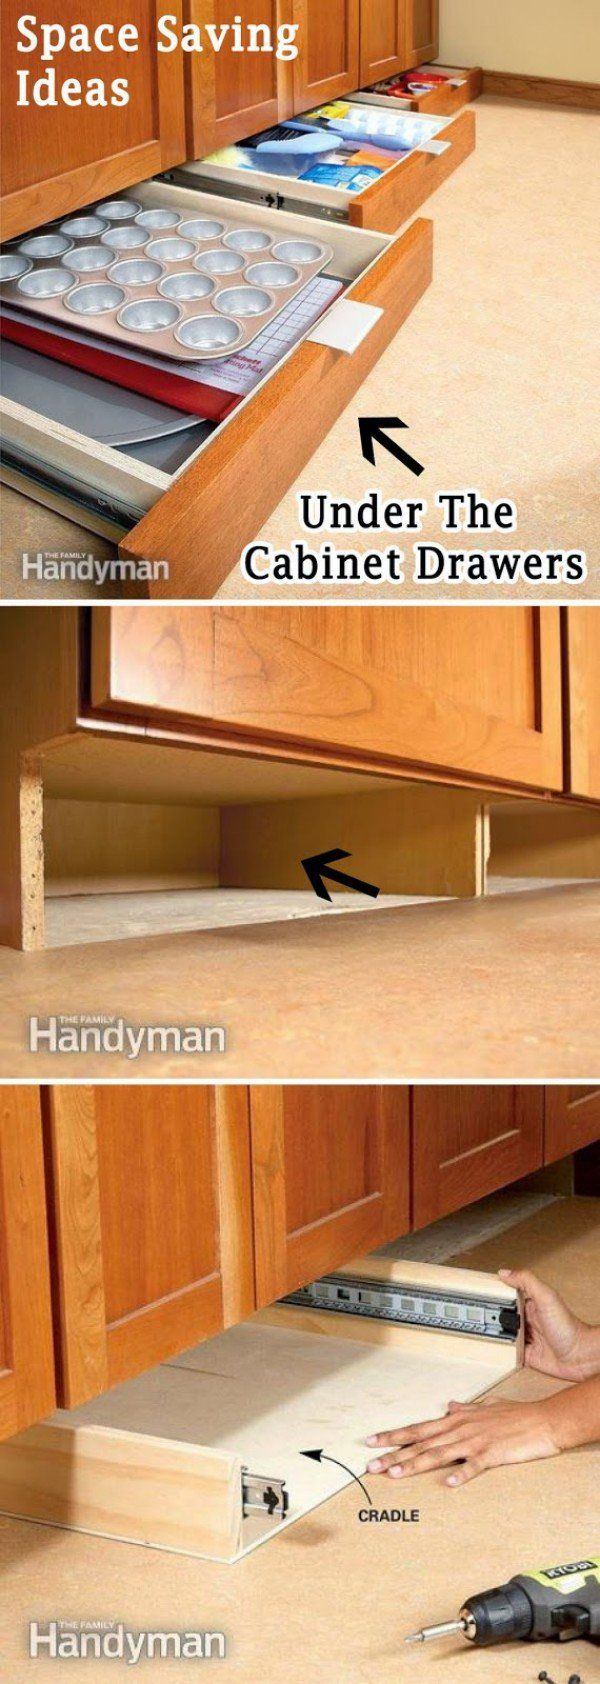 Beautiful 45 Amazingly Clever Storage And Organization Ideas You Must Try At Home ·  Cabinet DrawersThe CabinetUnder Cabinet StorageKitchen ...